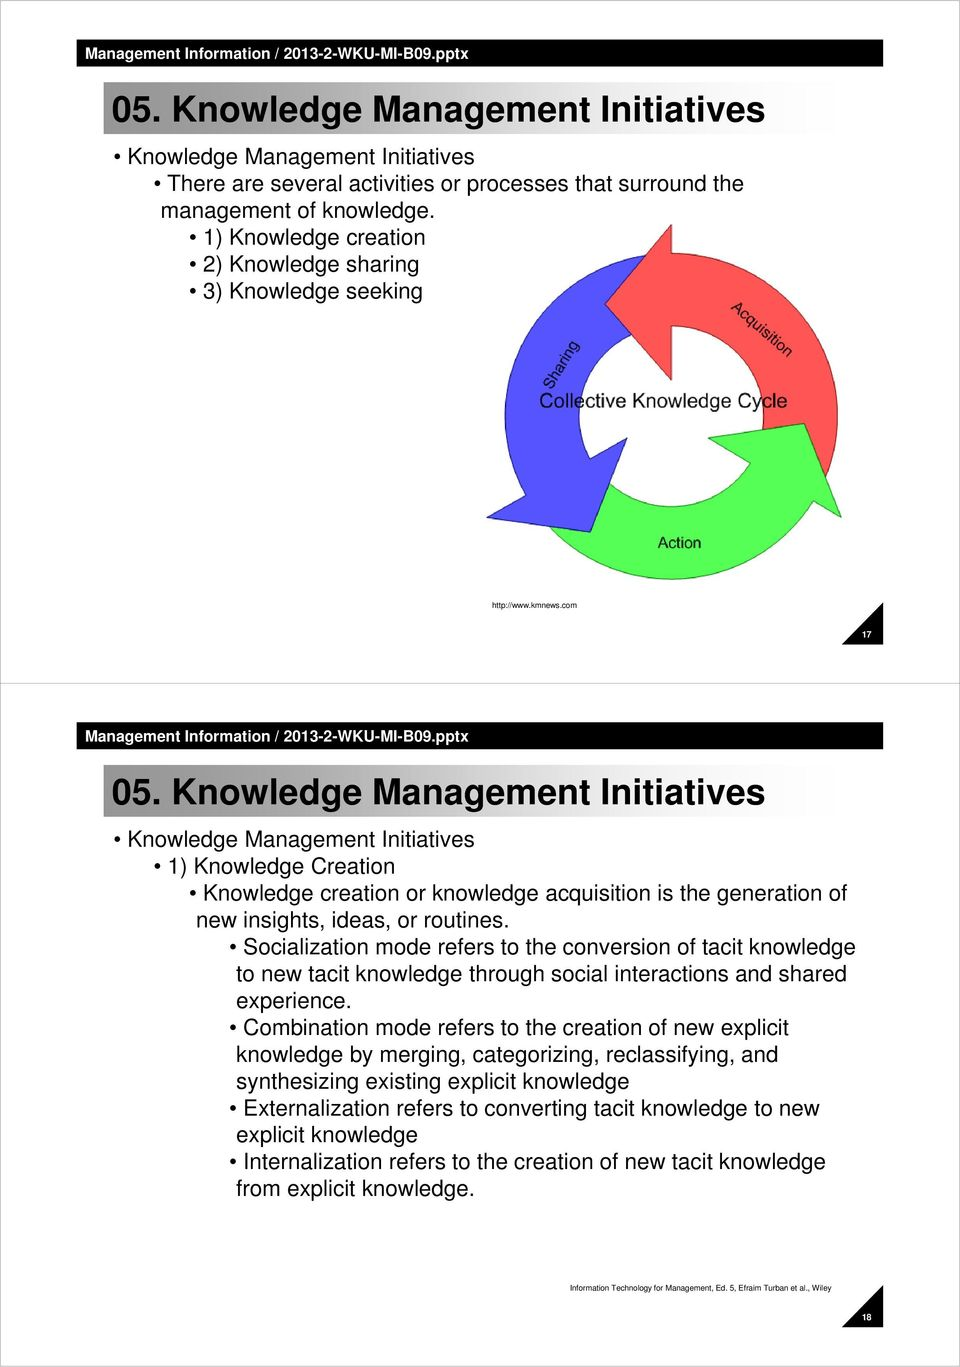 Knowledge Management Initiatives Knowledge Management Initiatives 1) Knowledge Creation Knowledge creation or knowledge acquisition is the generation of new insights, ideas, or routines.